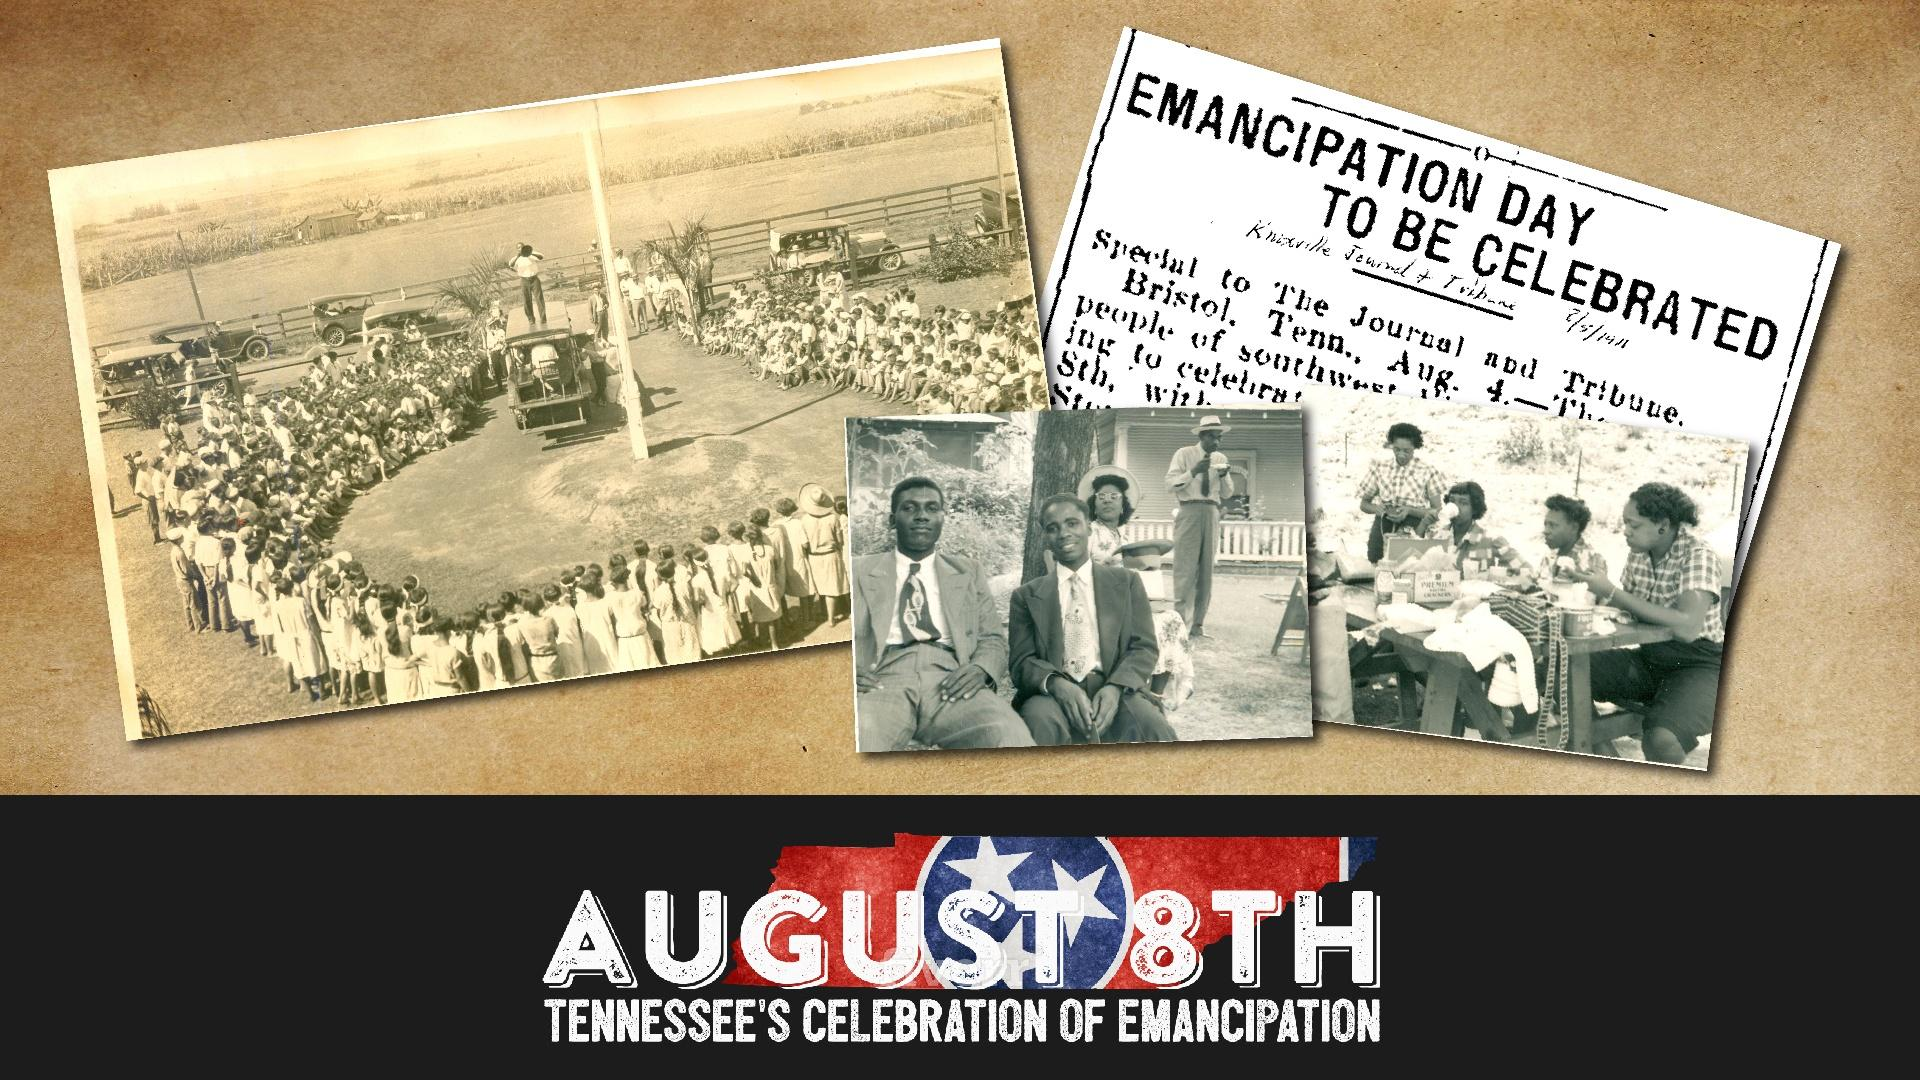 8th of August | Tennessee's Celebration of Emanci